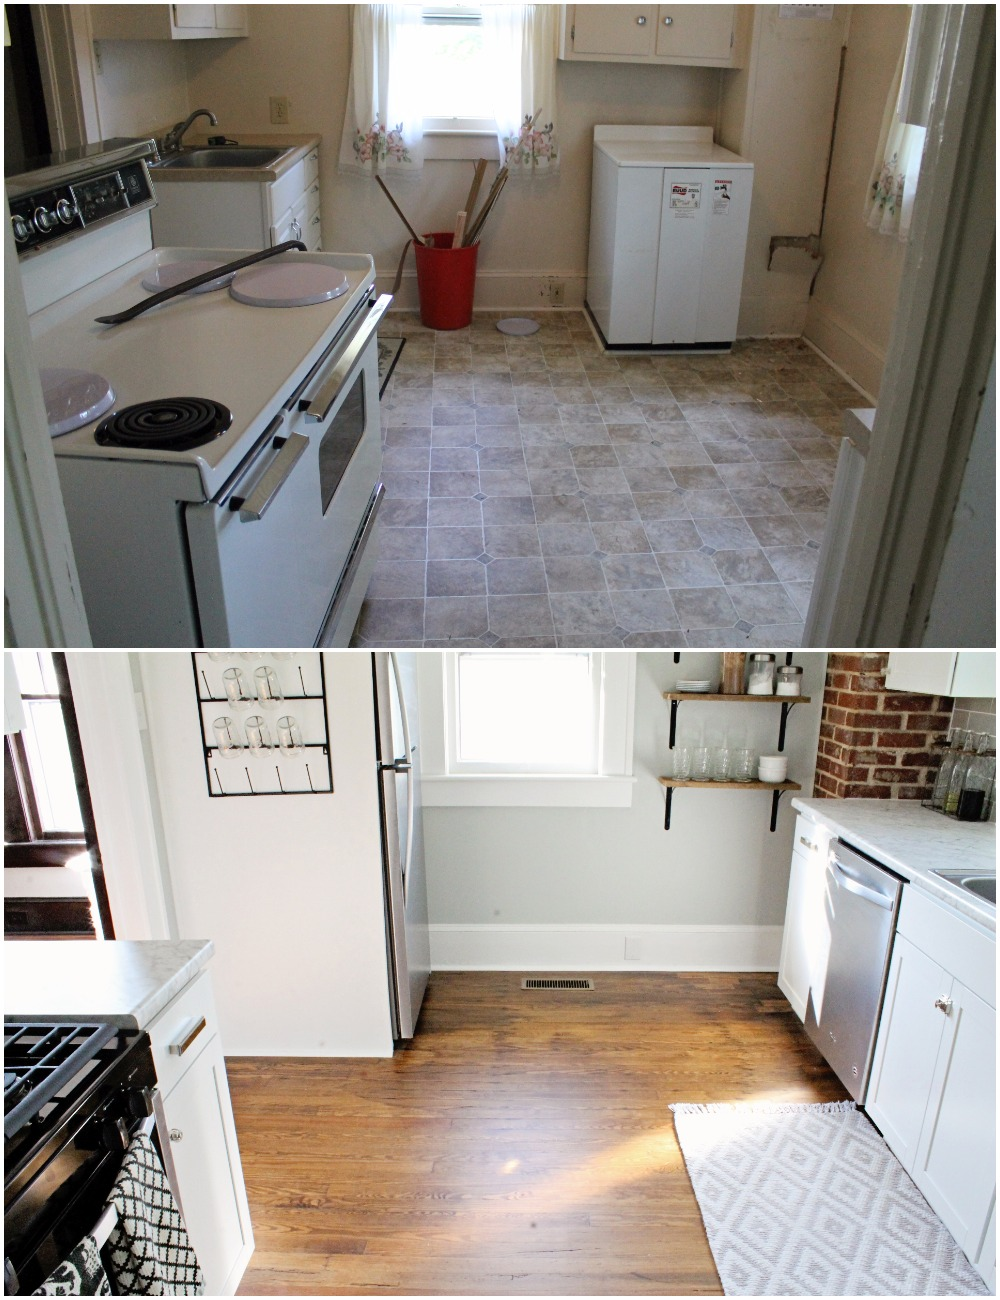 House Flipping Before and Afters - Budget Kitchen Renovation, Cheap Cabinets, Cheap Countertops - Sherwin Williams Silver Strand 18